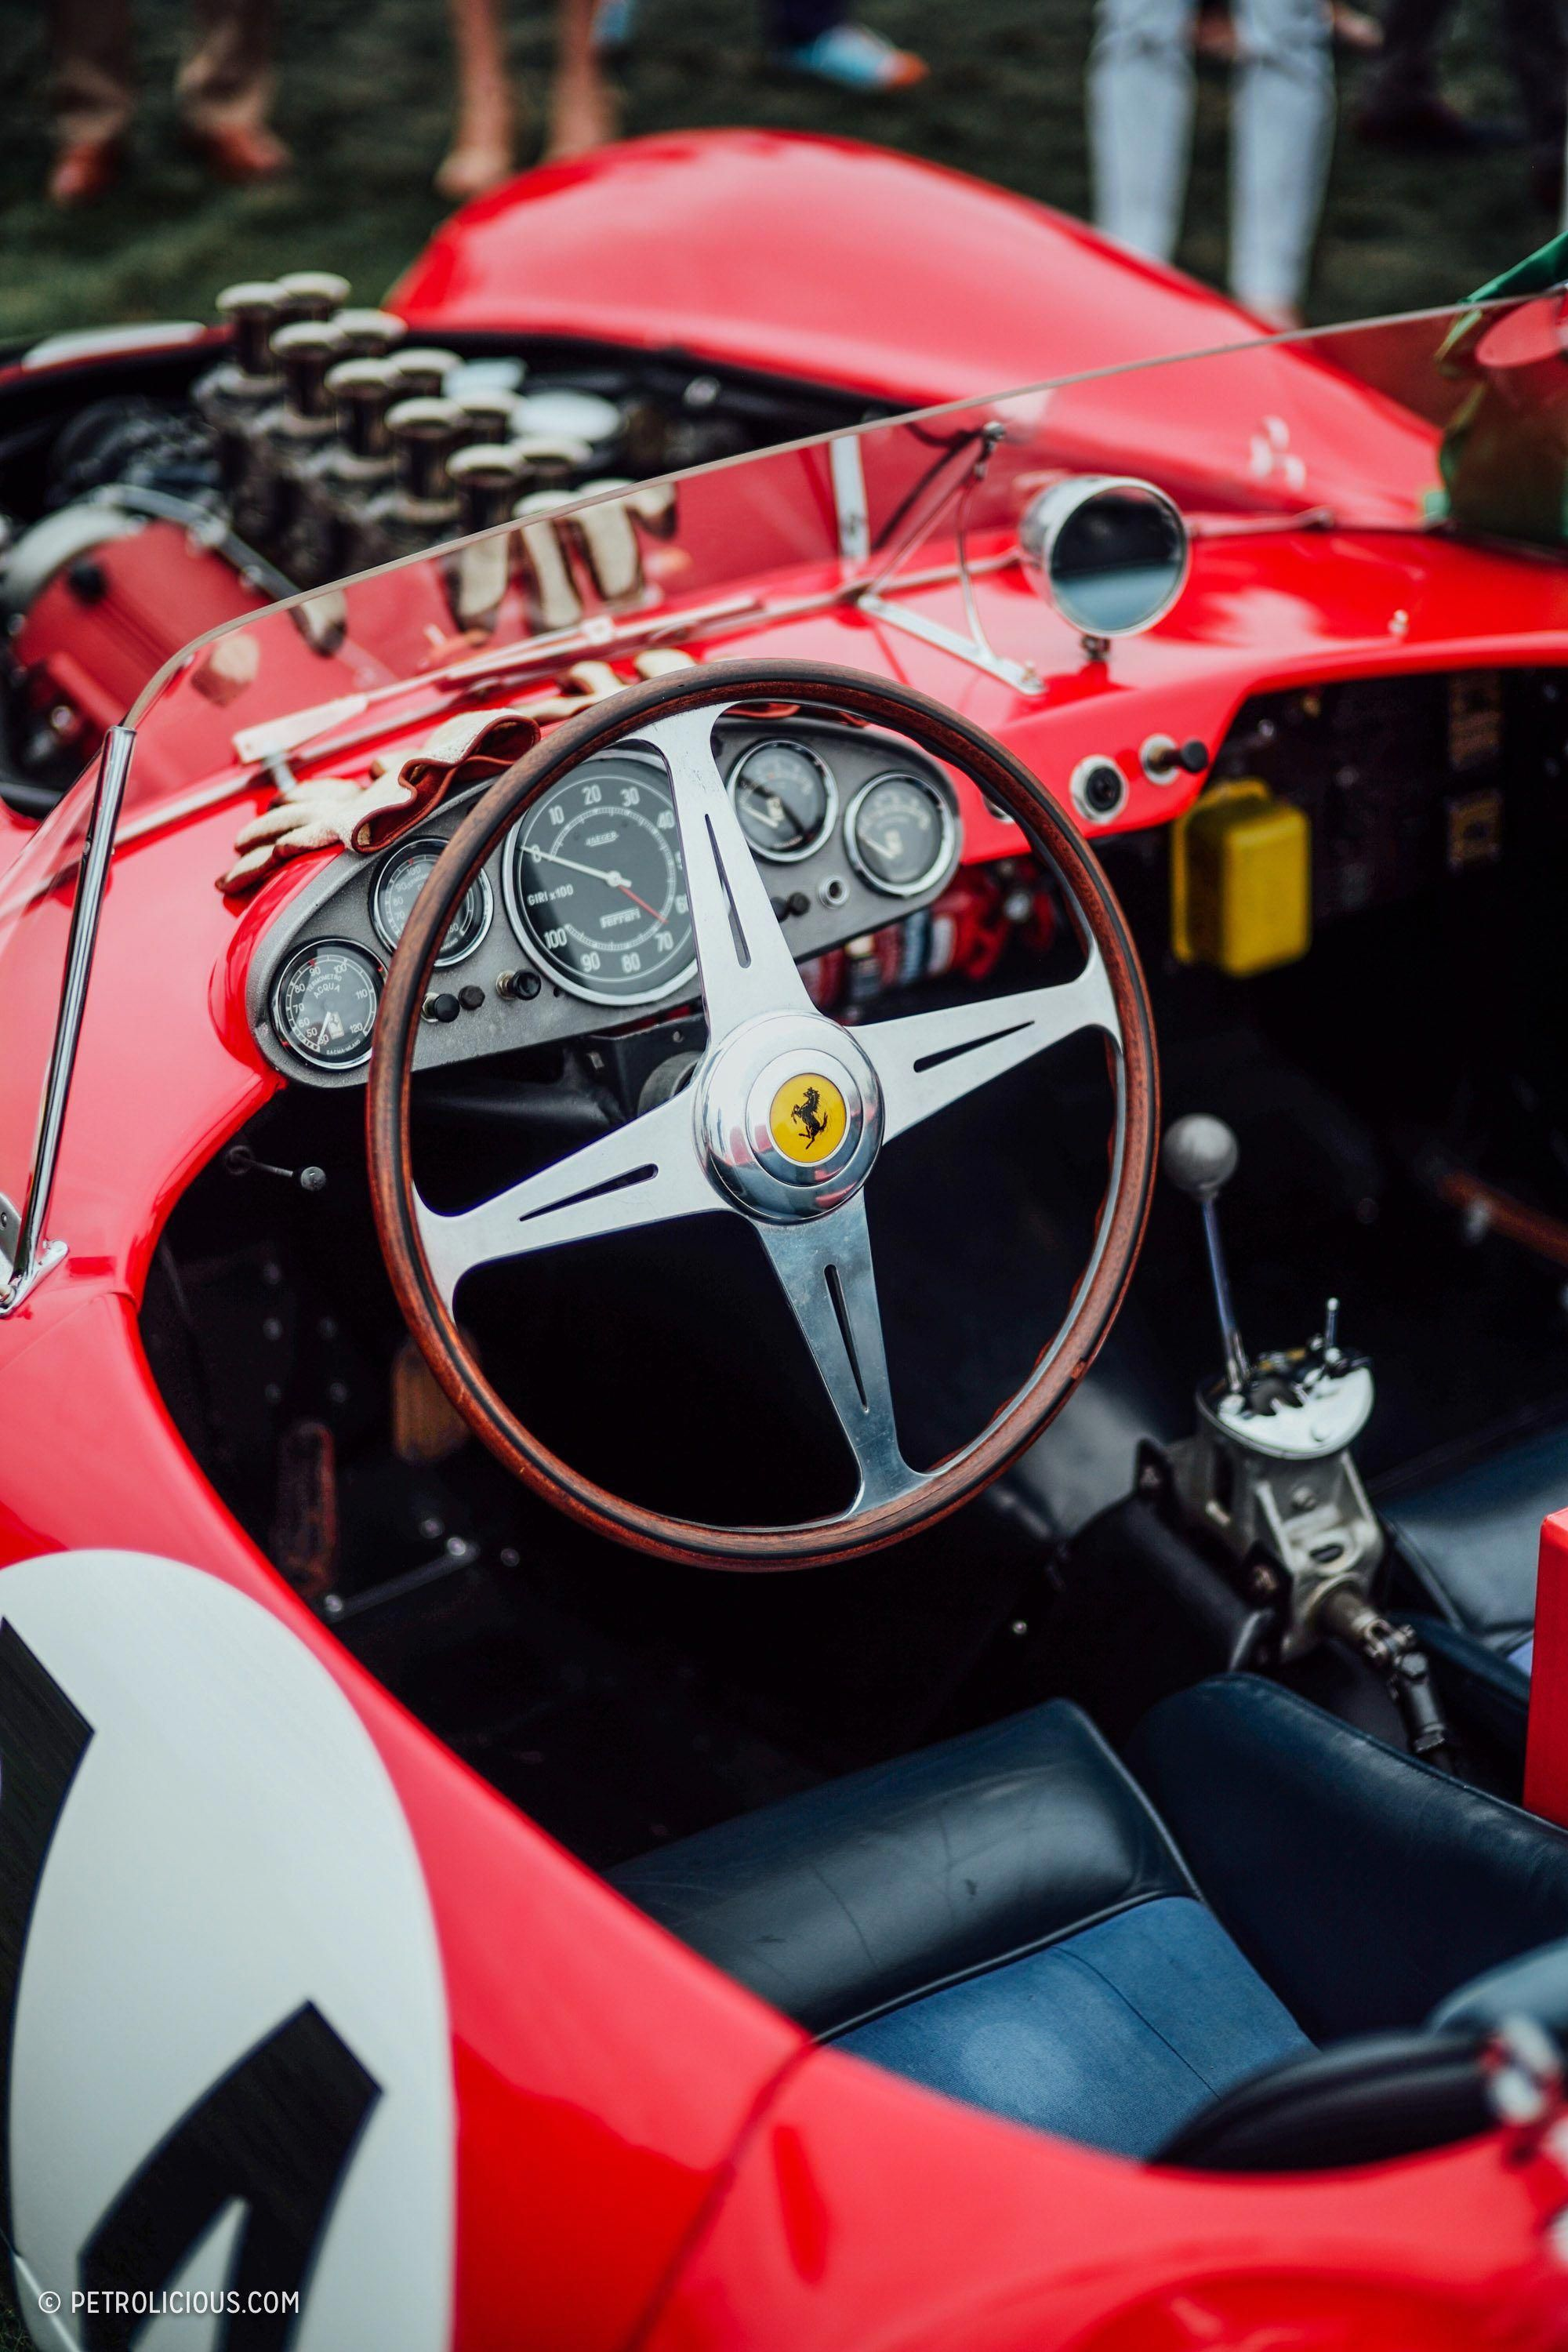 Interior Ferrari Dewa Poker Agen Poker Domino Bet Texas Poker Dewa Domino Poker Facebook Www Idsun88 Classic Cars Classic Sports Cars Bmw Classic Cars